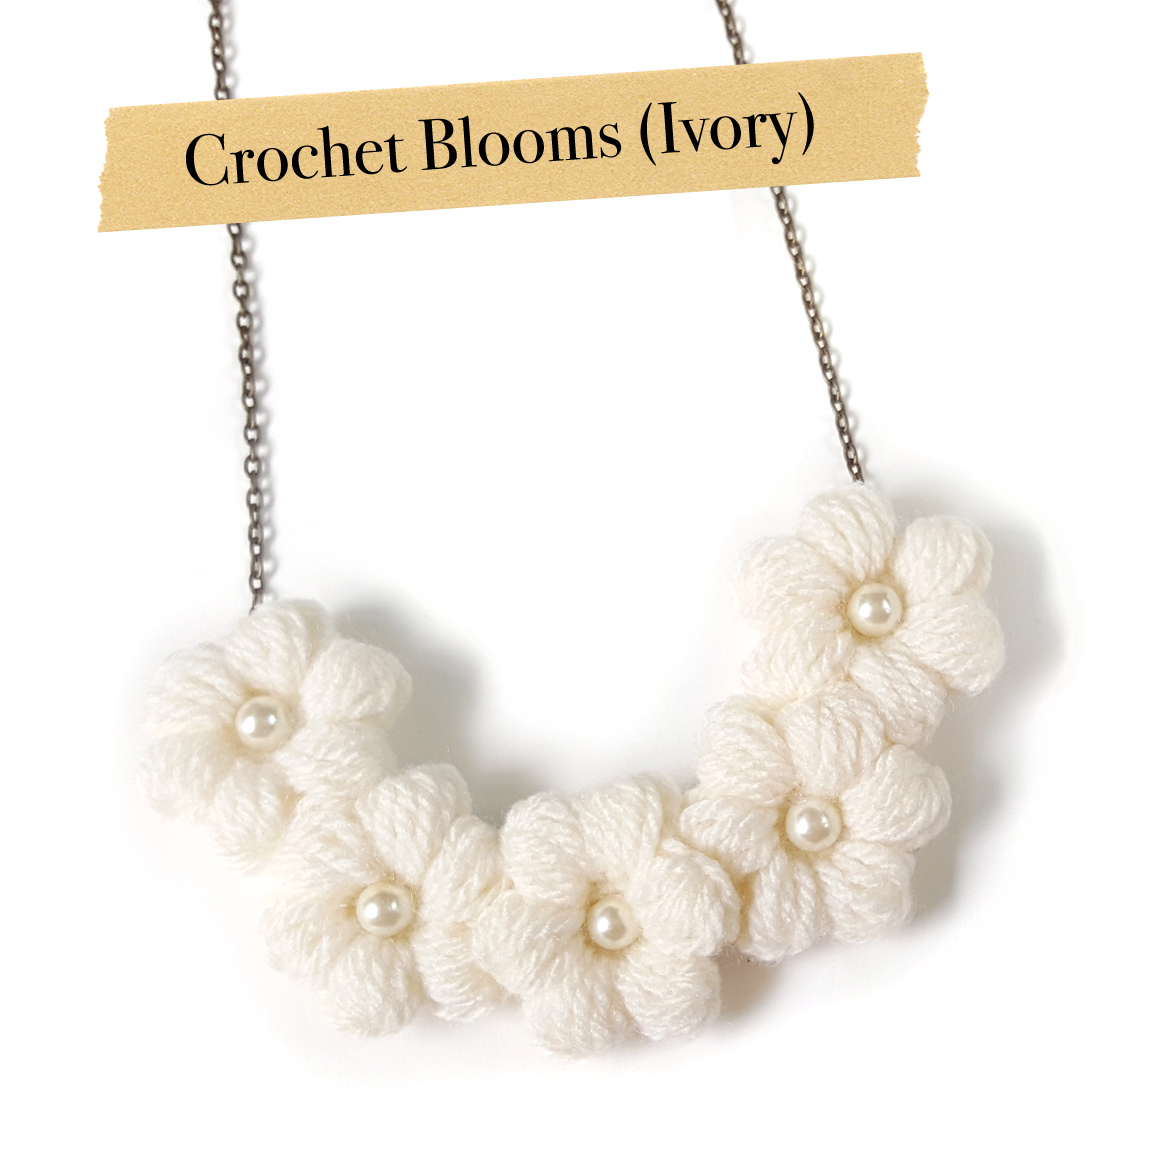 crochetblooms-ivory